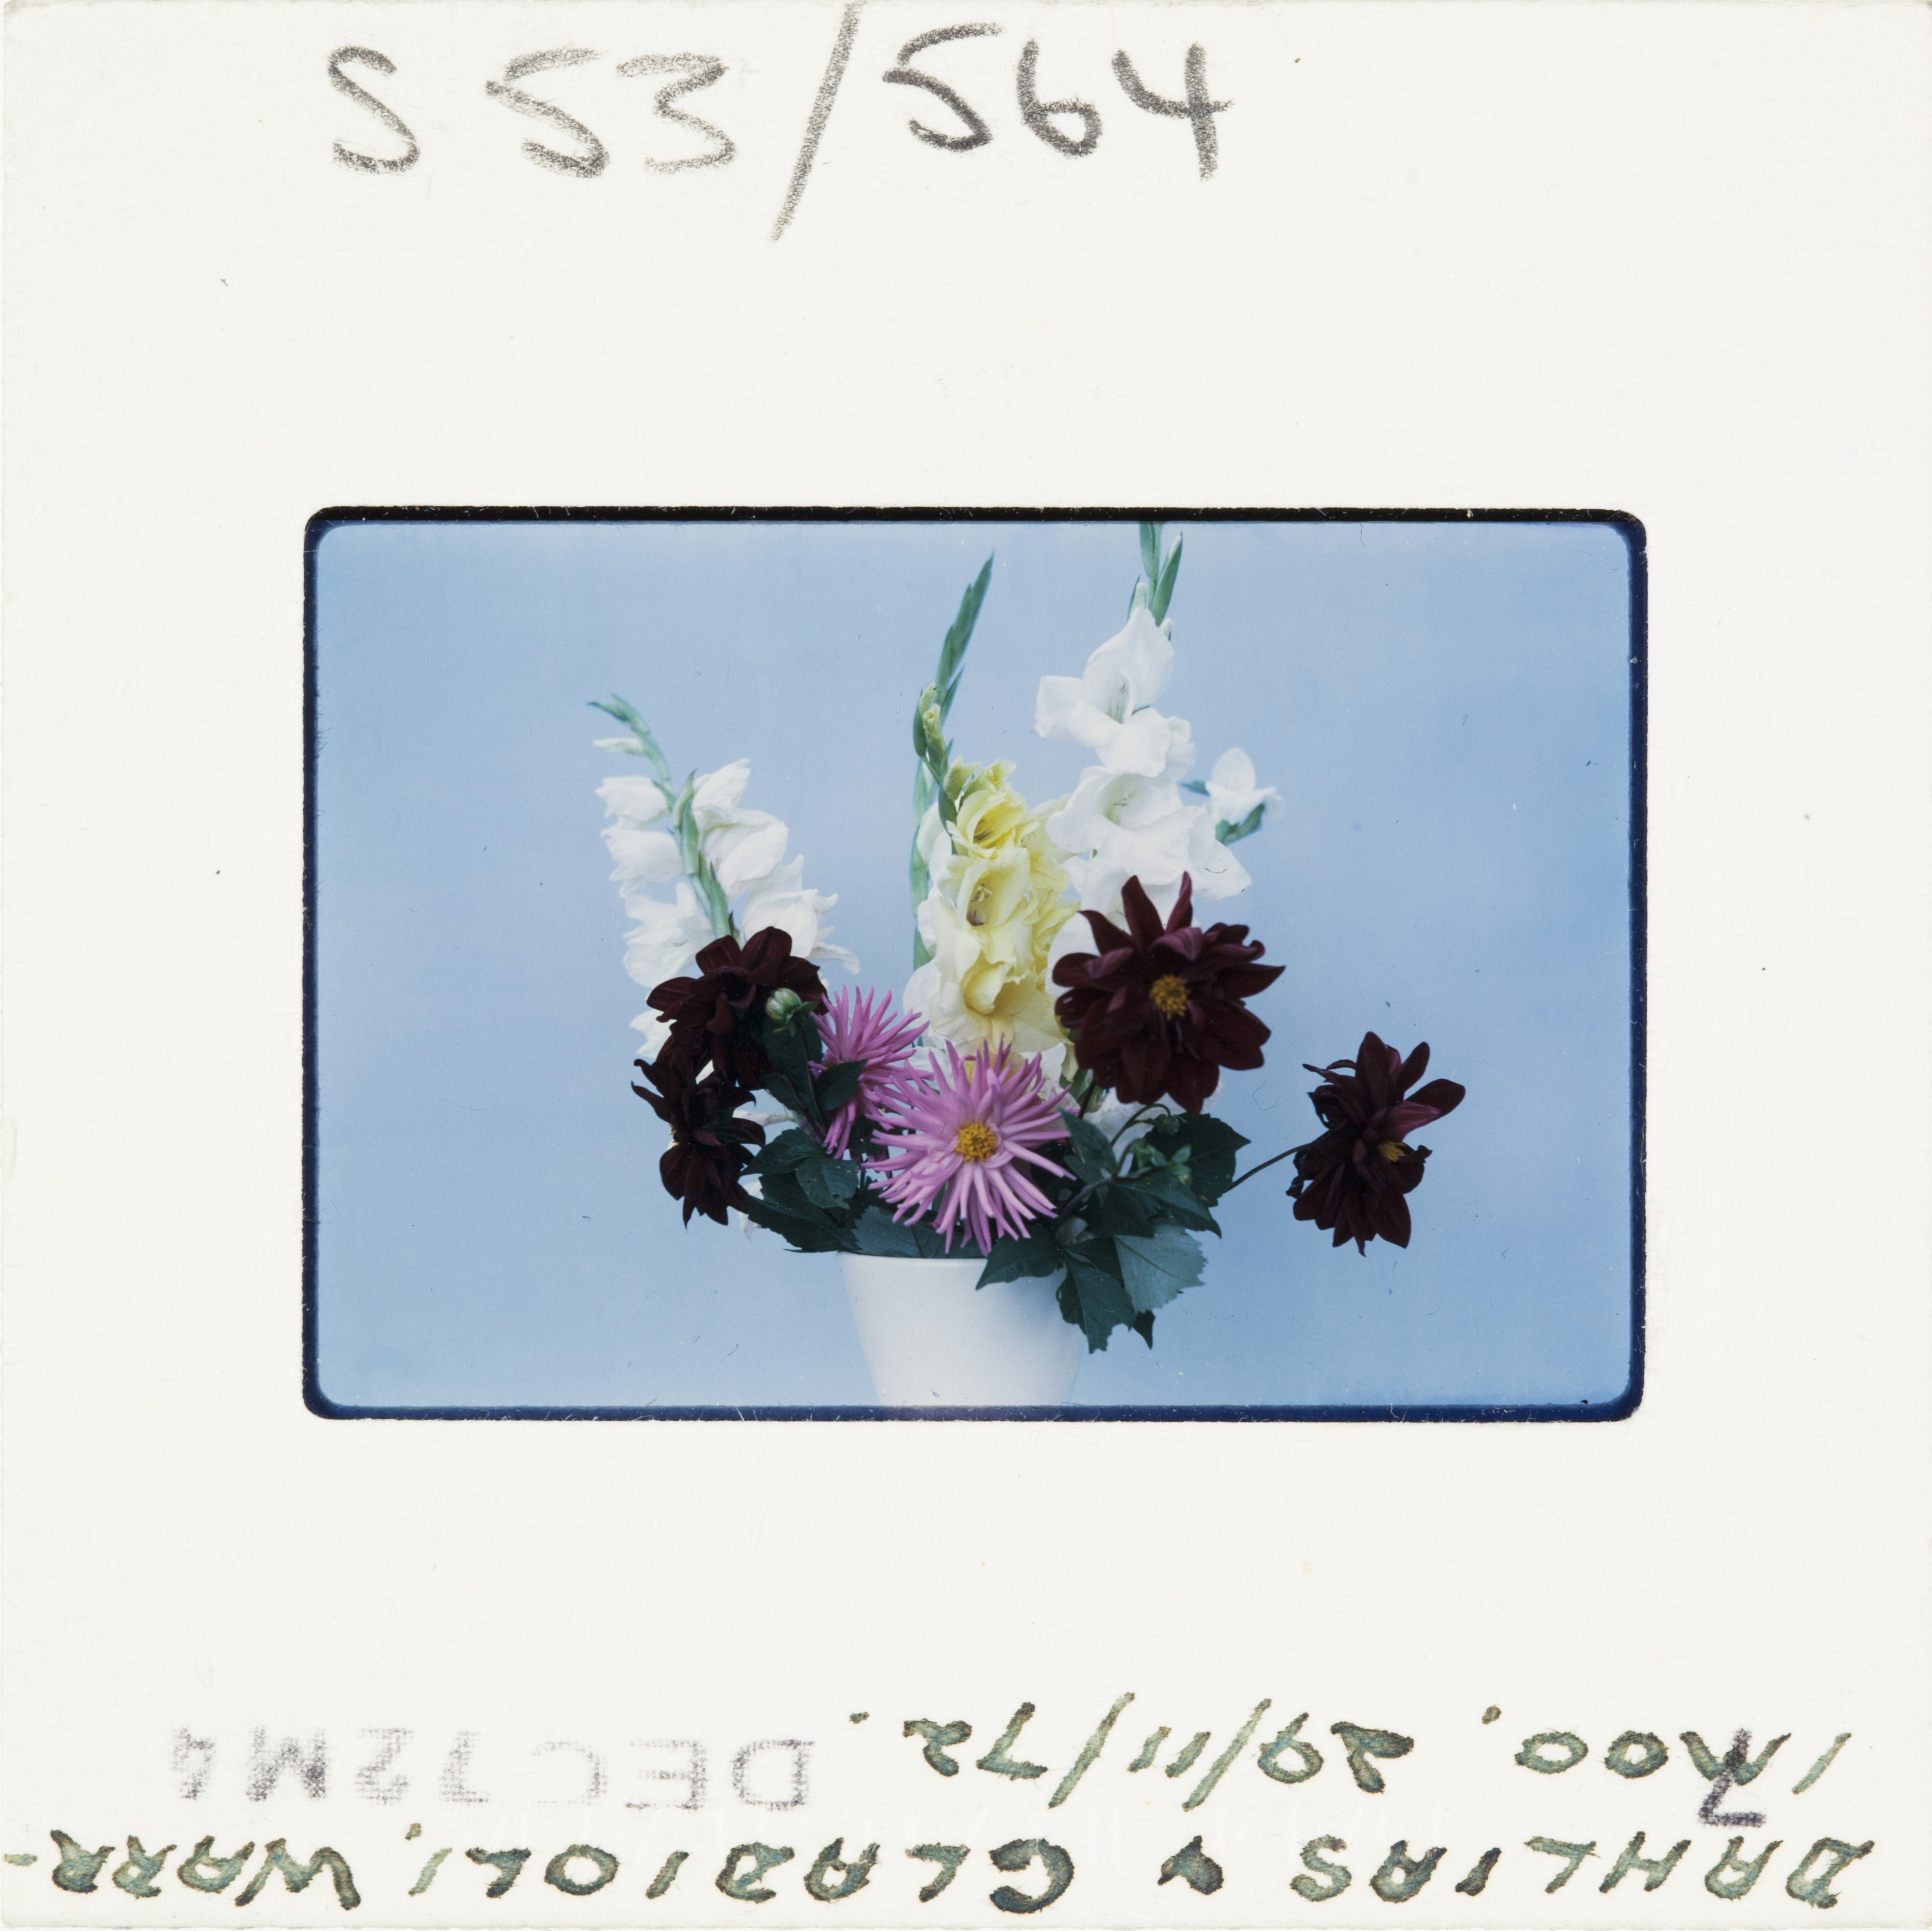 A colour Kodak slide dated 1972 - a vase of flowers against an egg shell blue background.